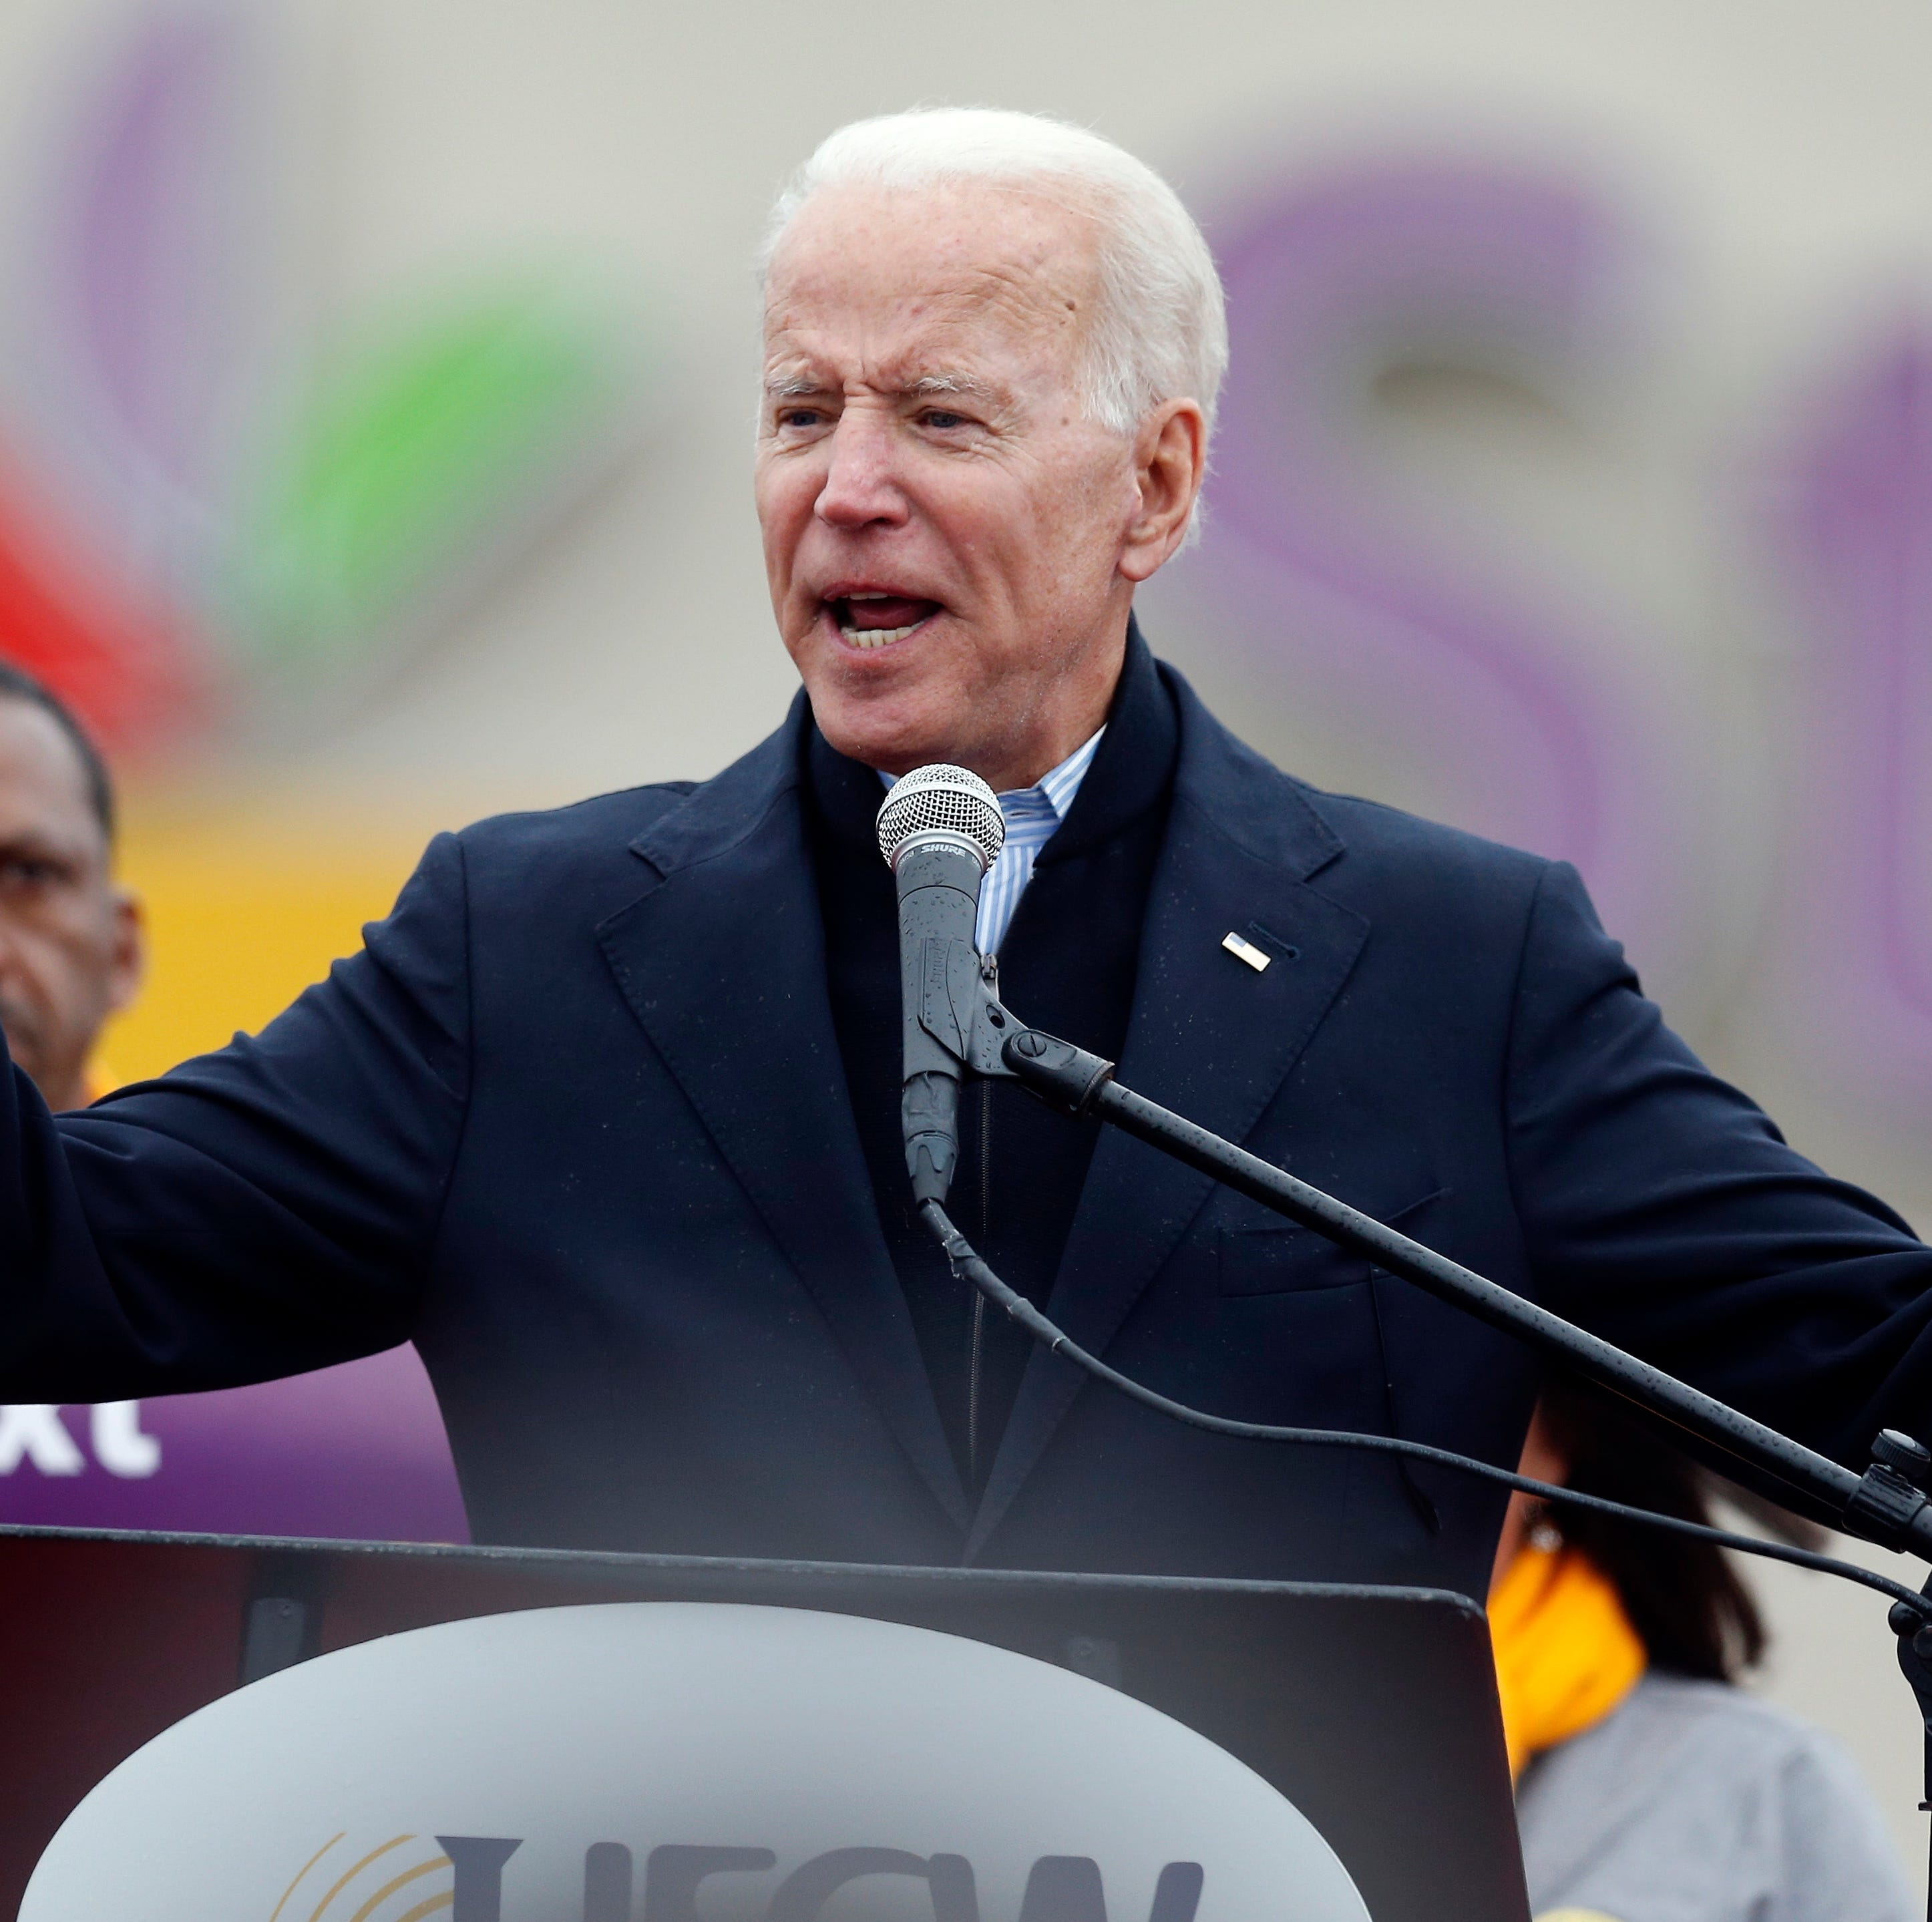 Former Vice President Joe Biden speaks at a rally in support of striking Stop & Shop workers in Boston, Thursday, April 18, 2019.